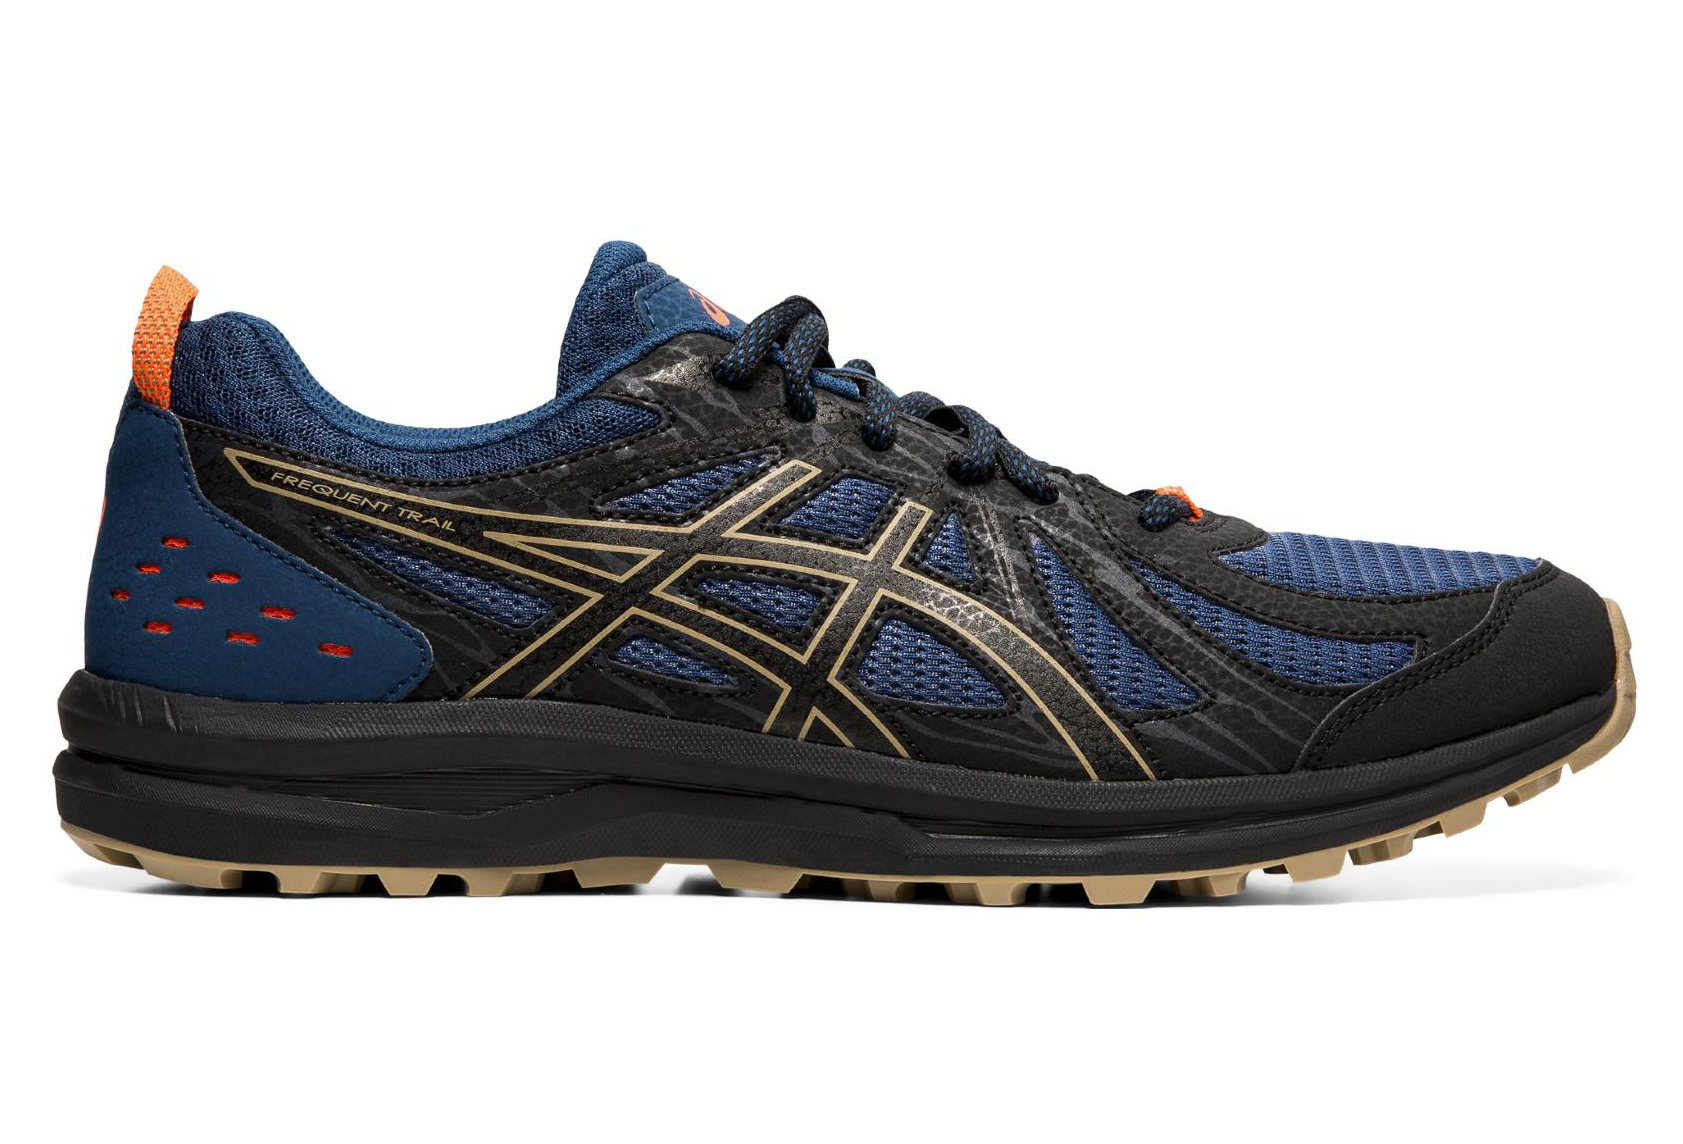 Asics Frequent Trail Trail Zapatos Azul Negro Hombres